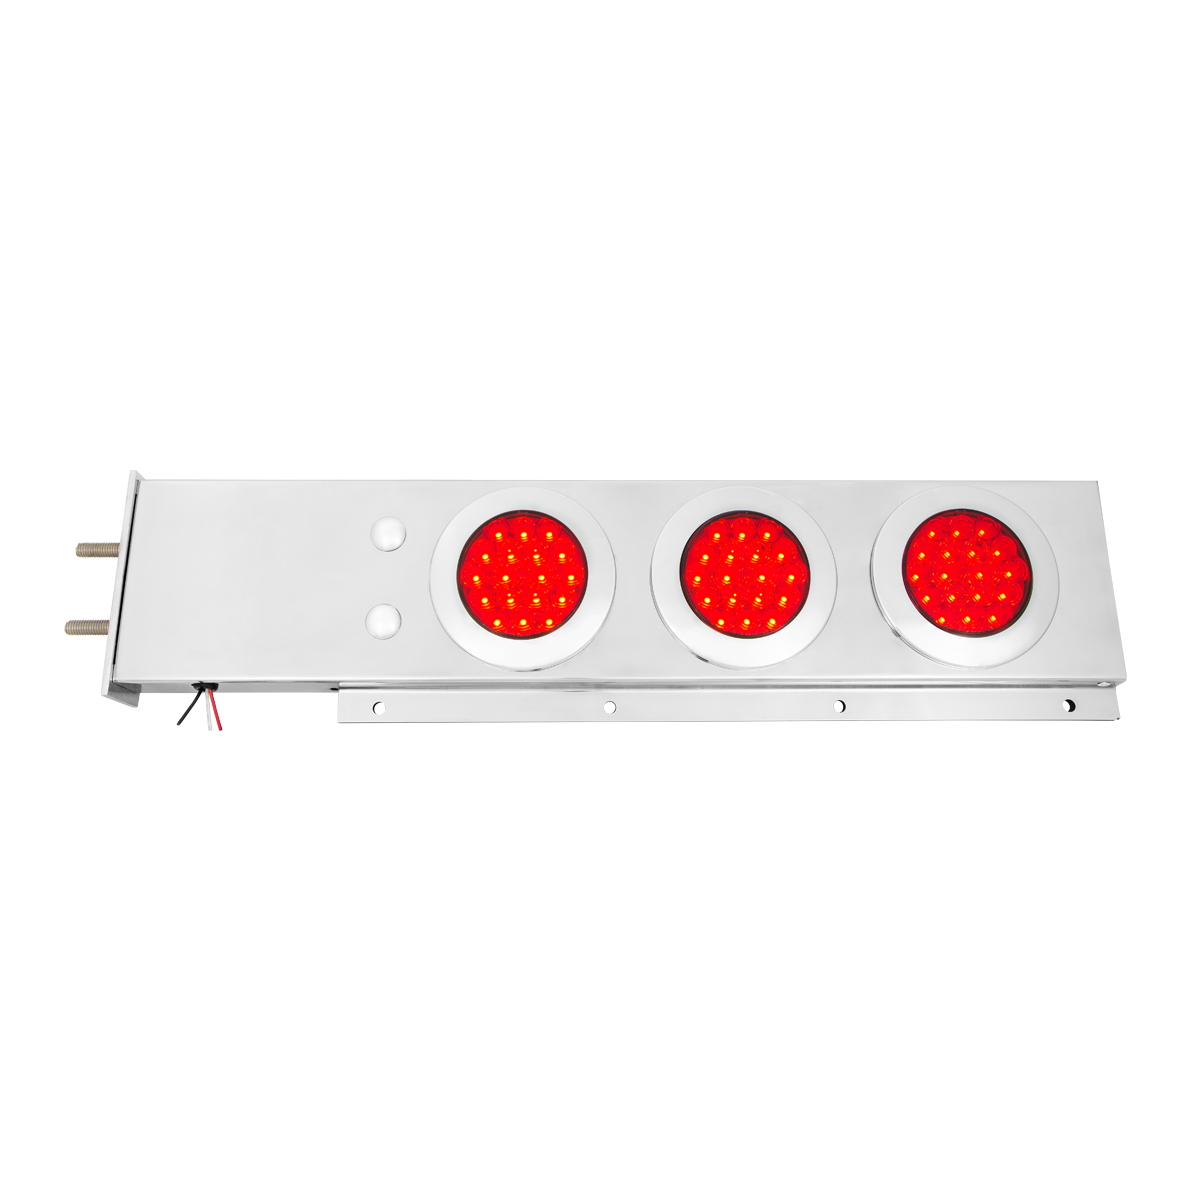 "Stainless Steel Spring-Loaded Two Piece Rear Light Bar w/ 4"" Fleet LEDs & Chrome Bezels"